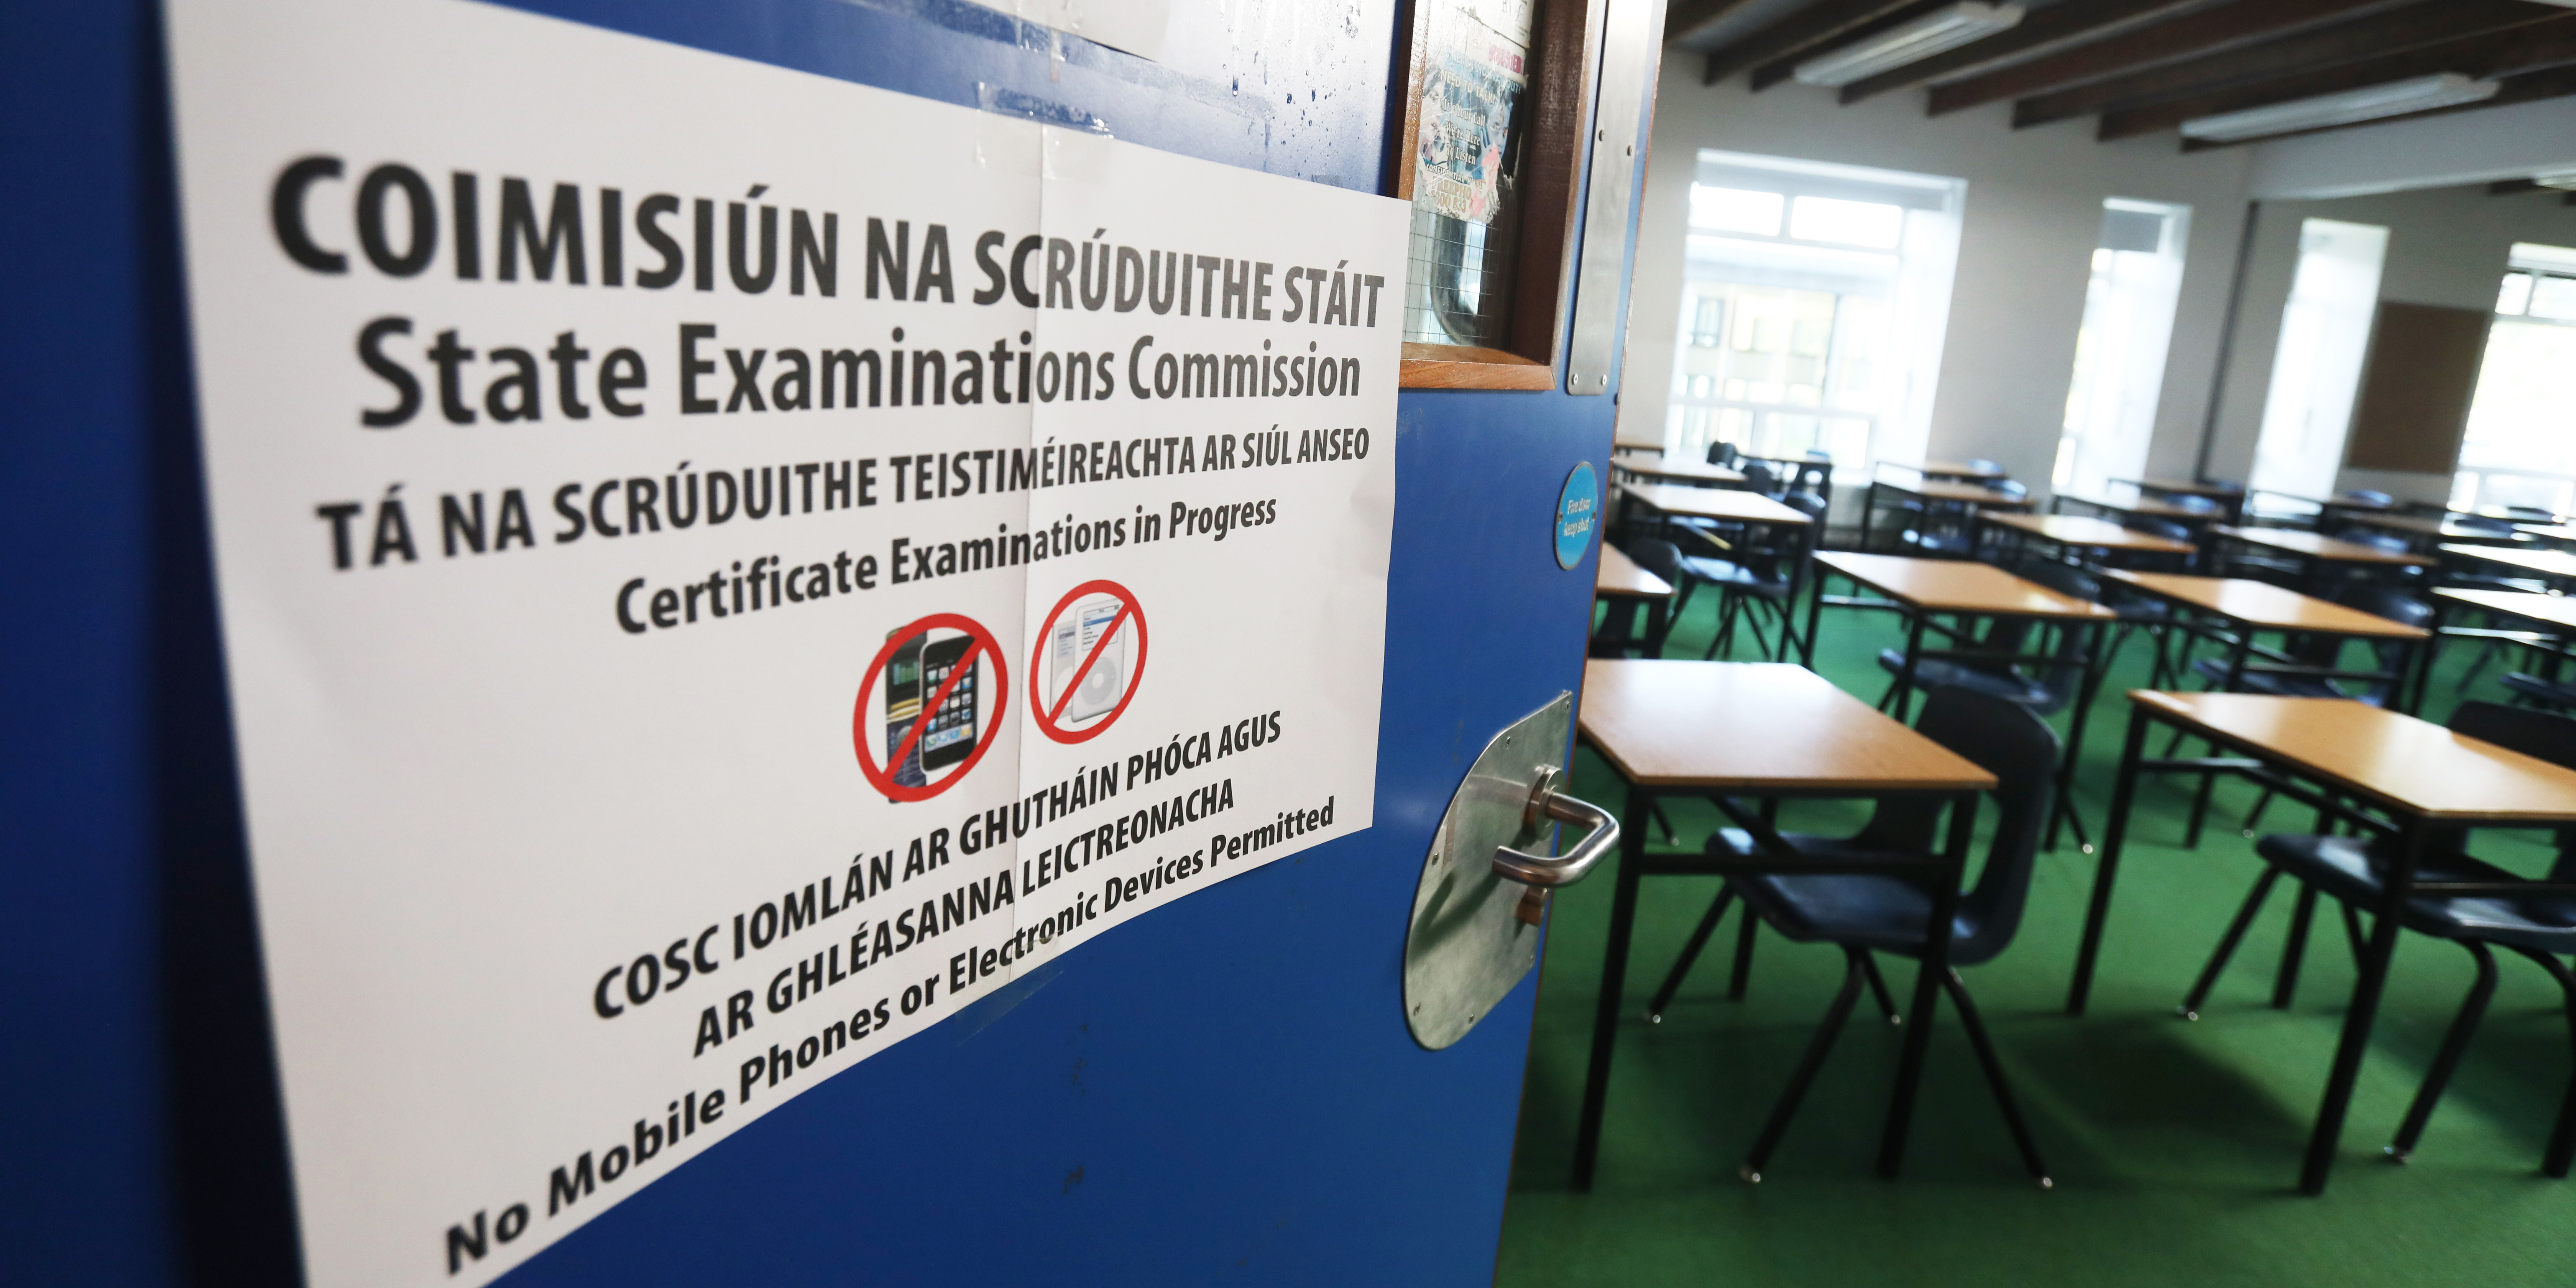 Leaving Certificate guidance published and parents alerted not to be pressured or deceived